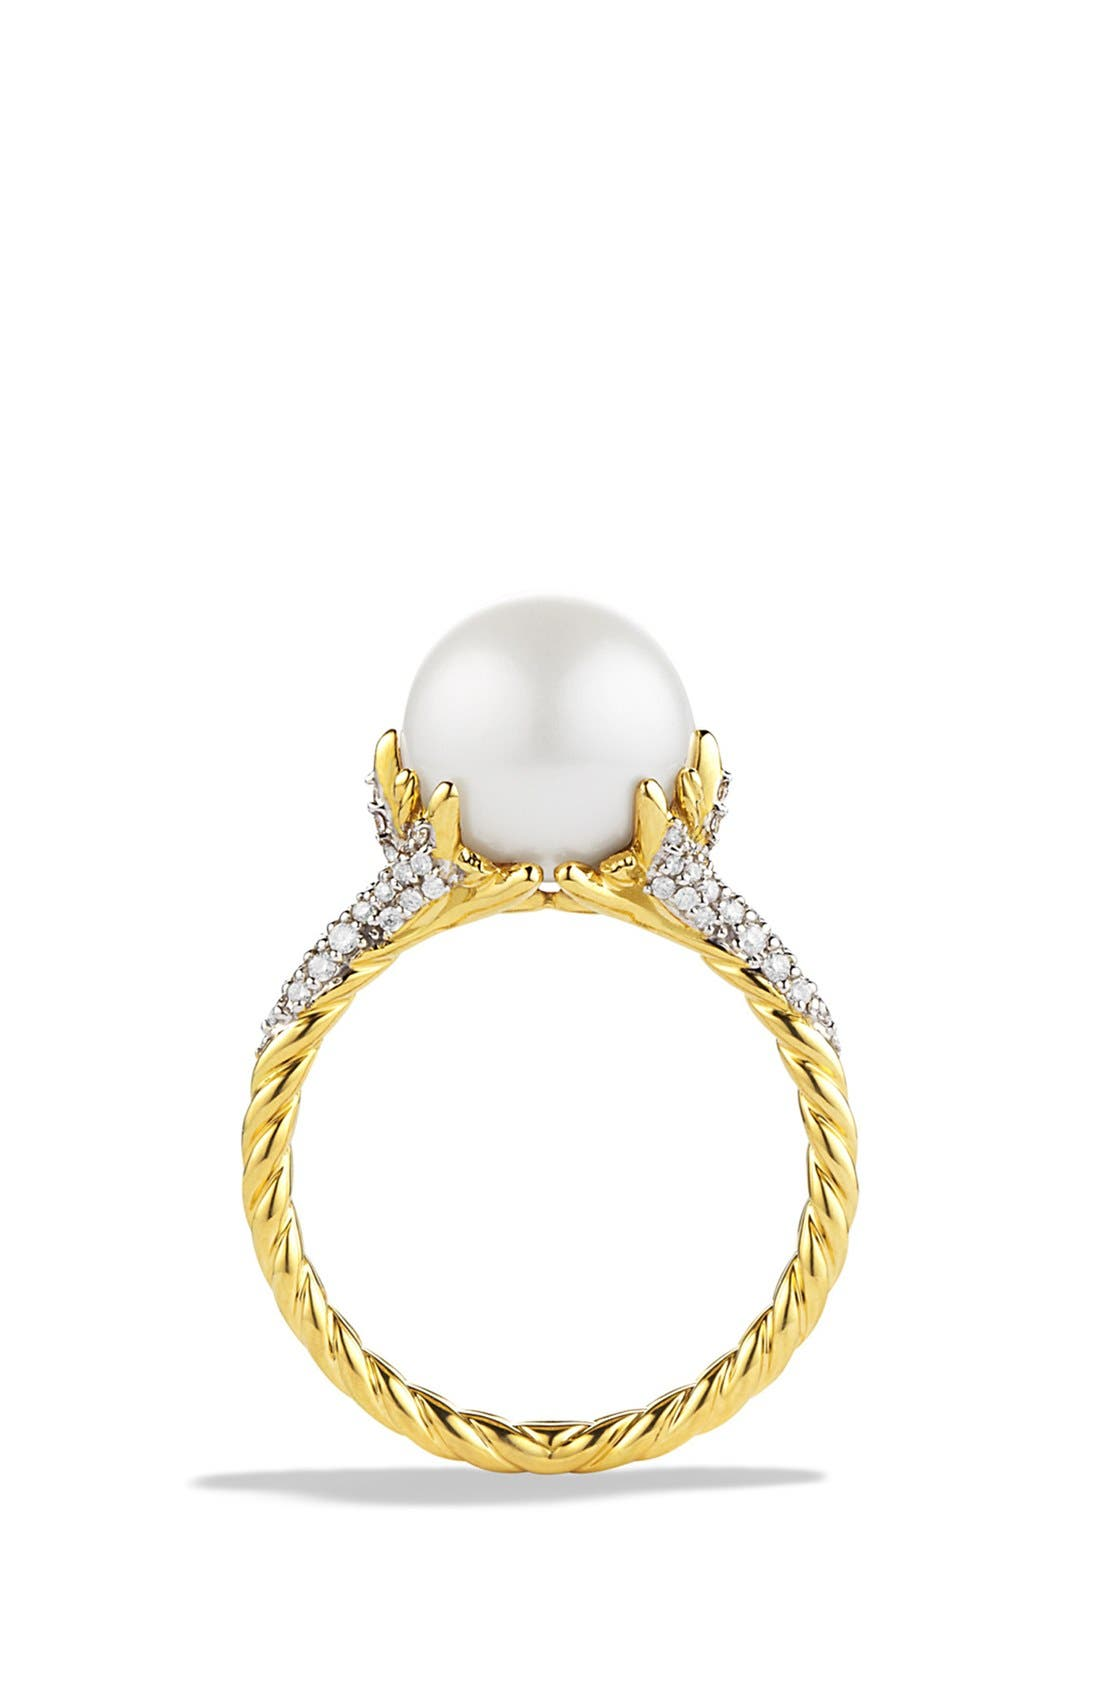 'Starburst' Pearl Ring with Diamonds in Gold,                             Alternate thumbnail 3, color,                             PEARL